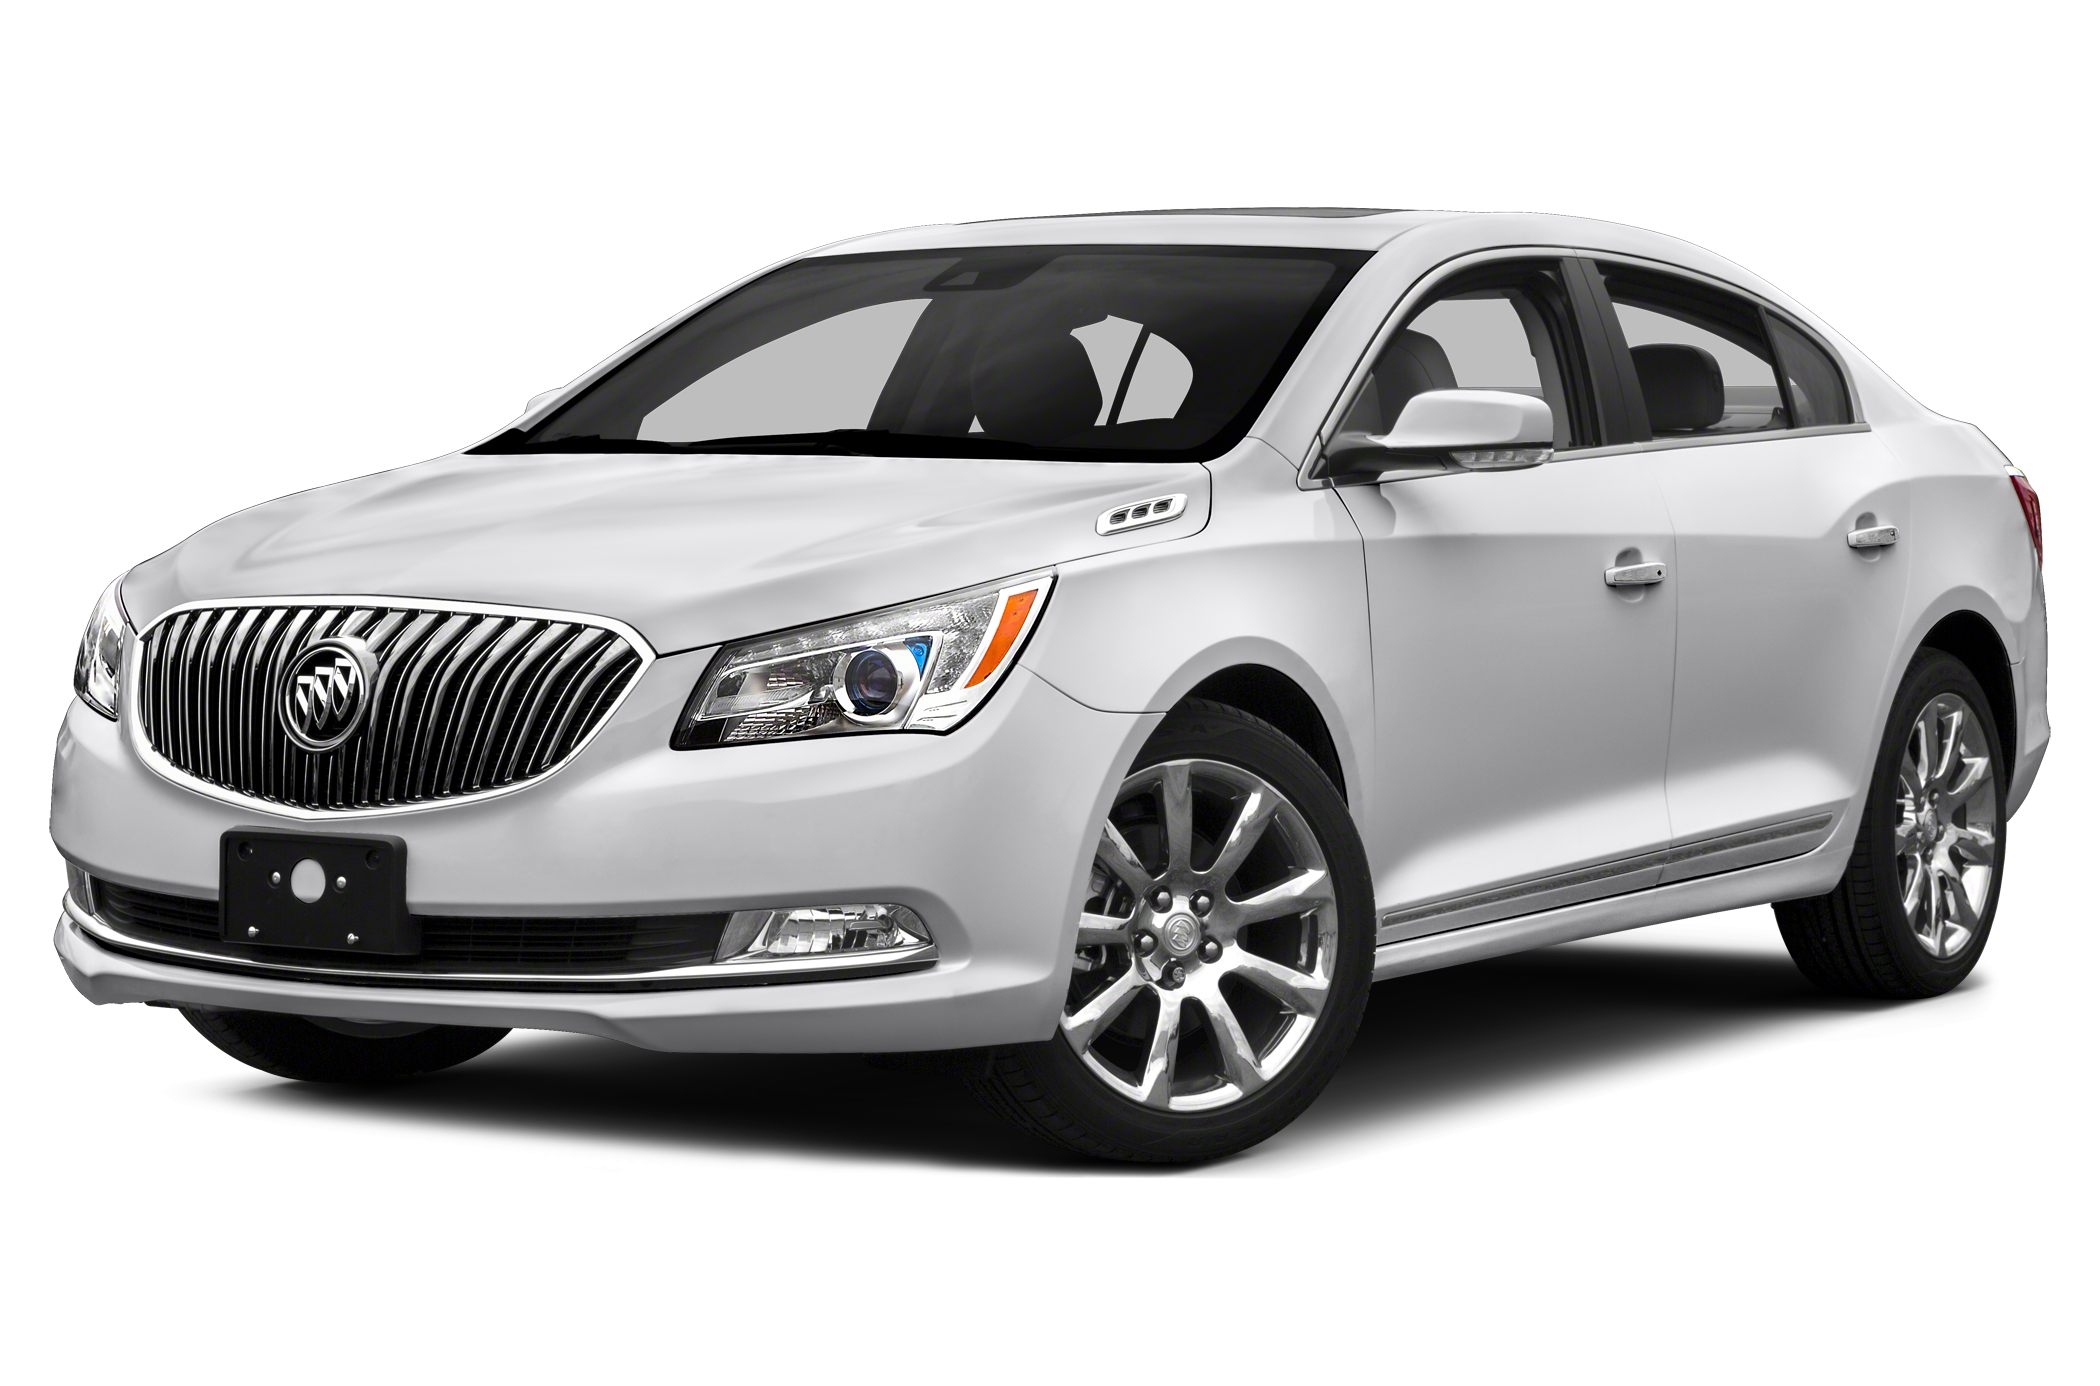 2014 Buick LaCrosse Leather Sedan for sale in Albuquerque for $25,995 with 16,837 miles.